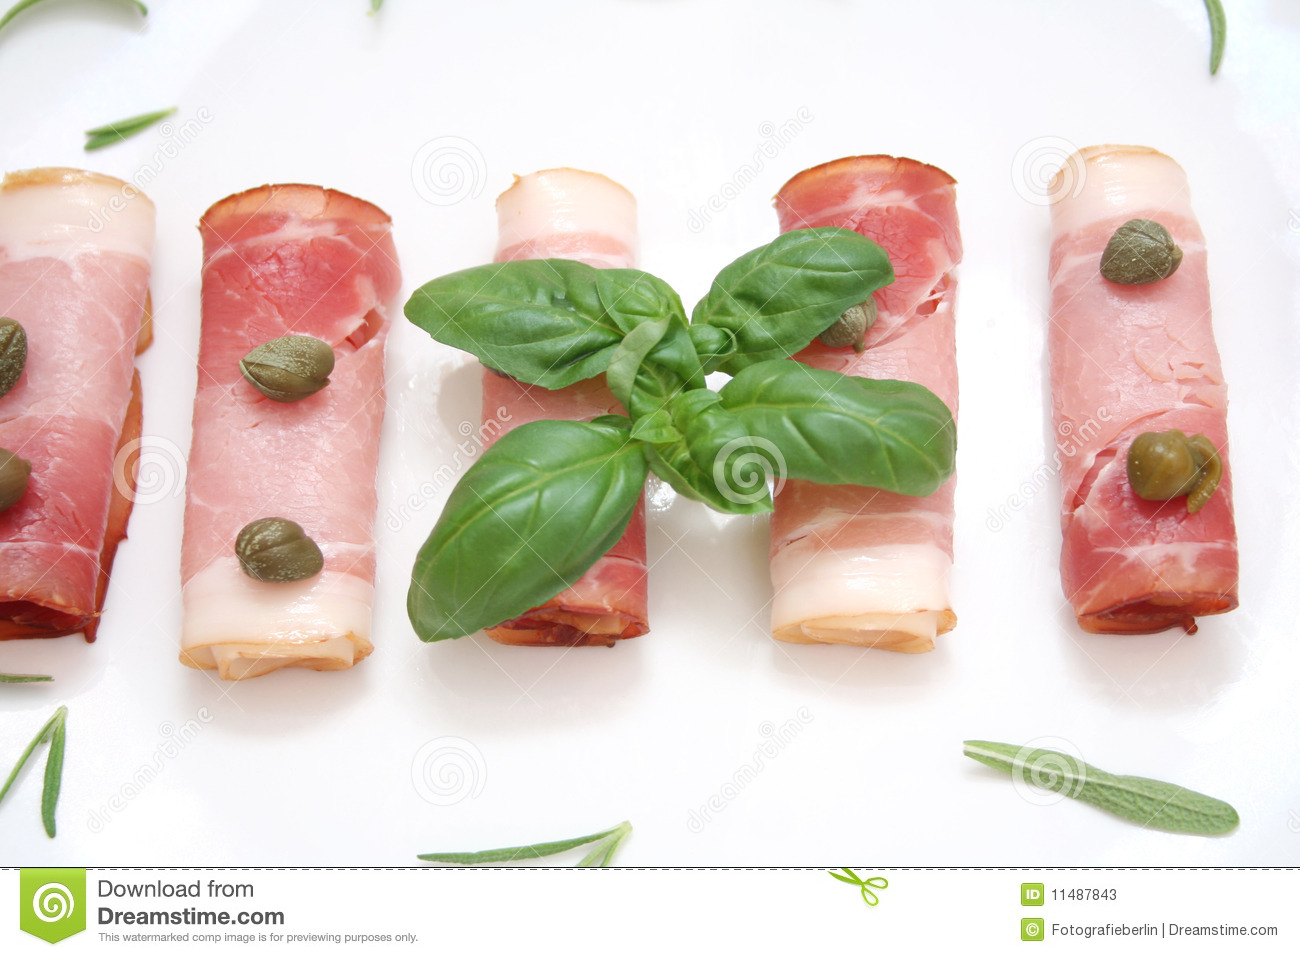 Bacon and capers